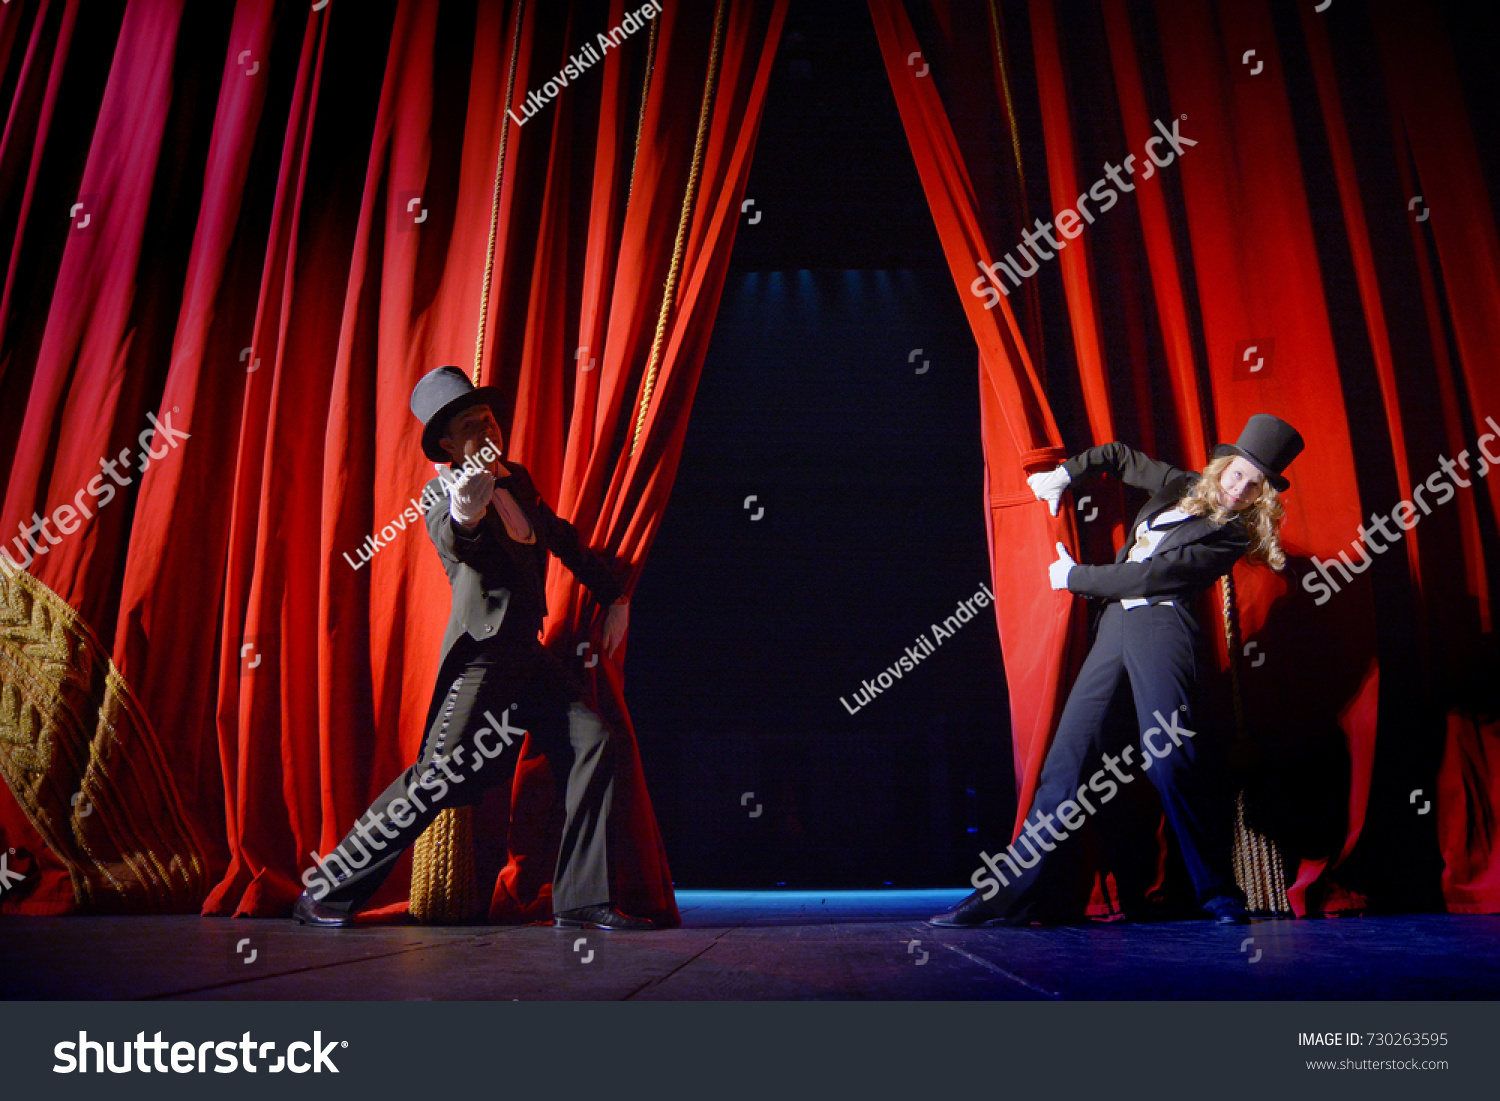 the actor opens a theater curtain #730263595